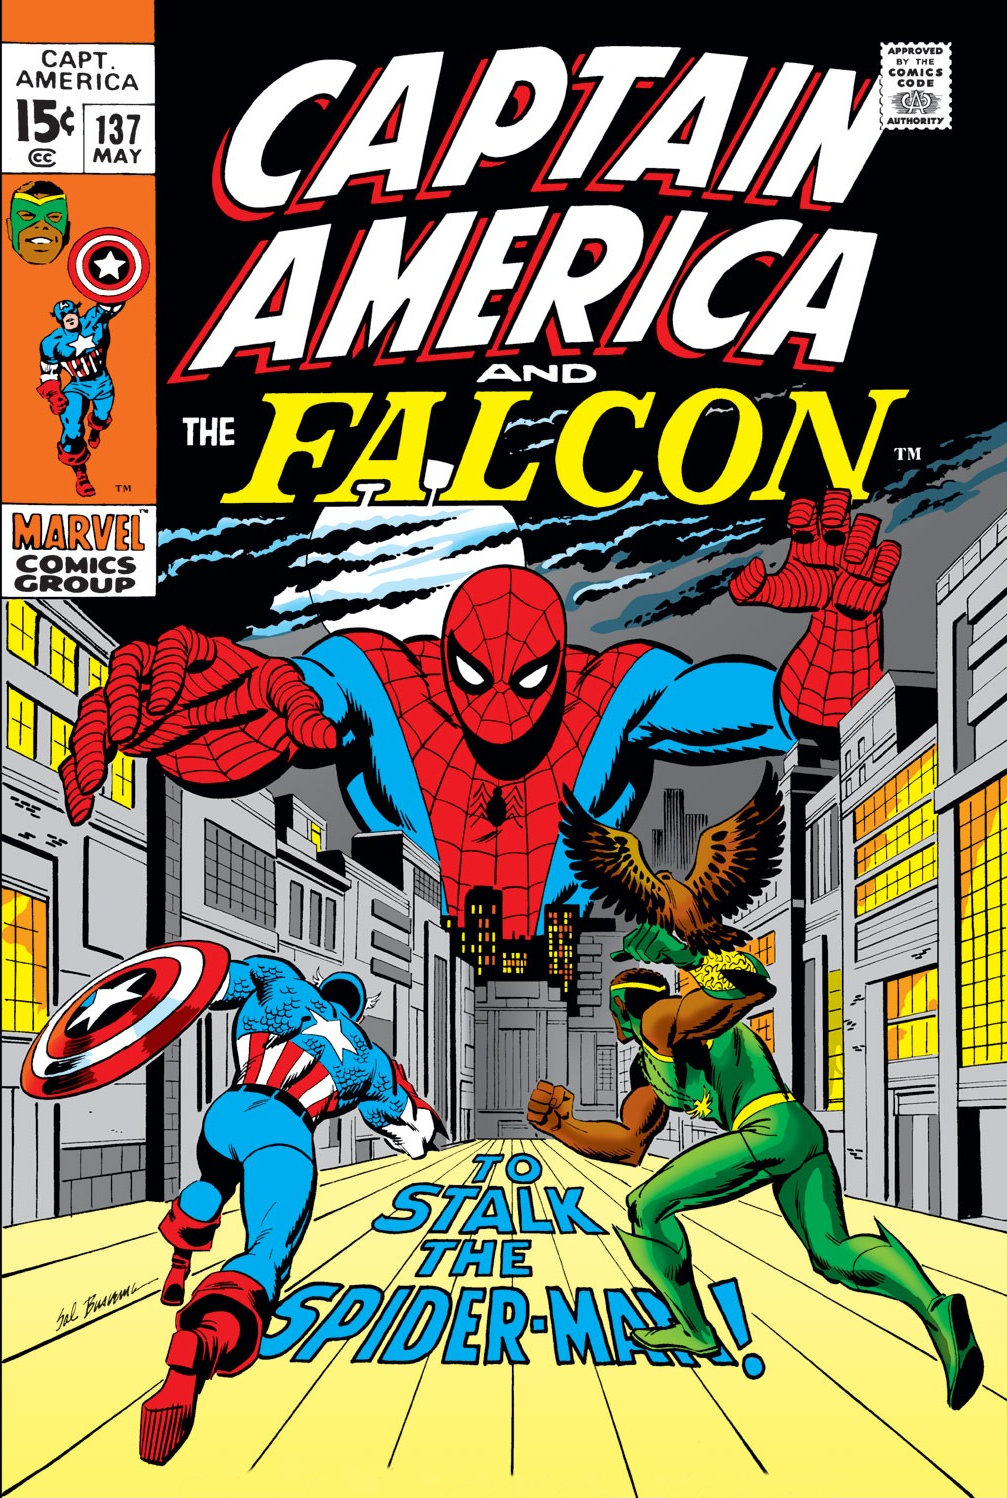 Captain America (1968) #137, cover by Sal Buscema.